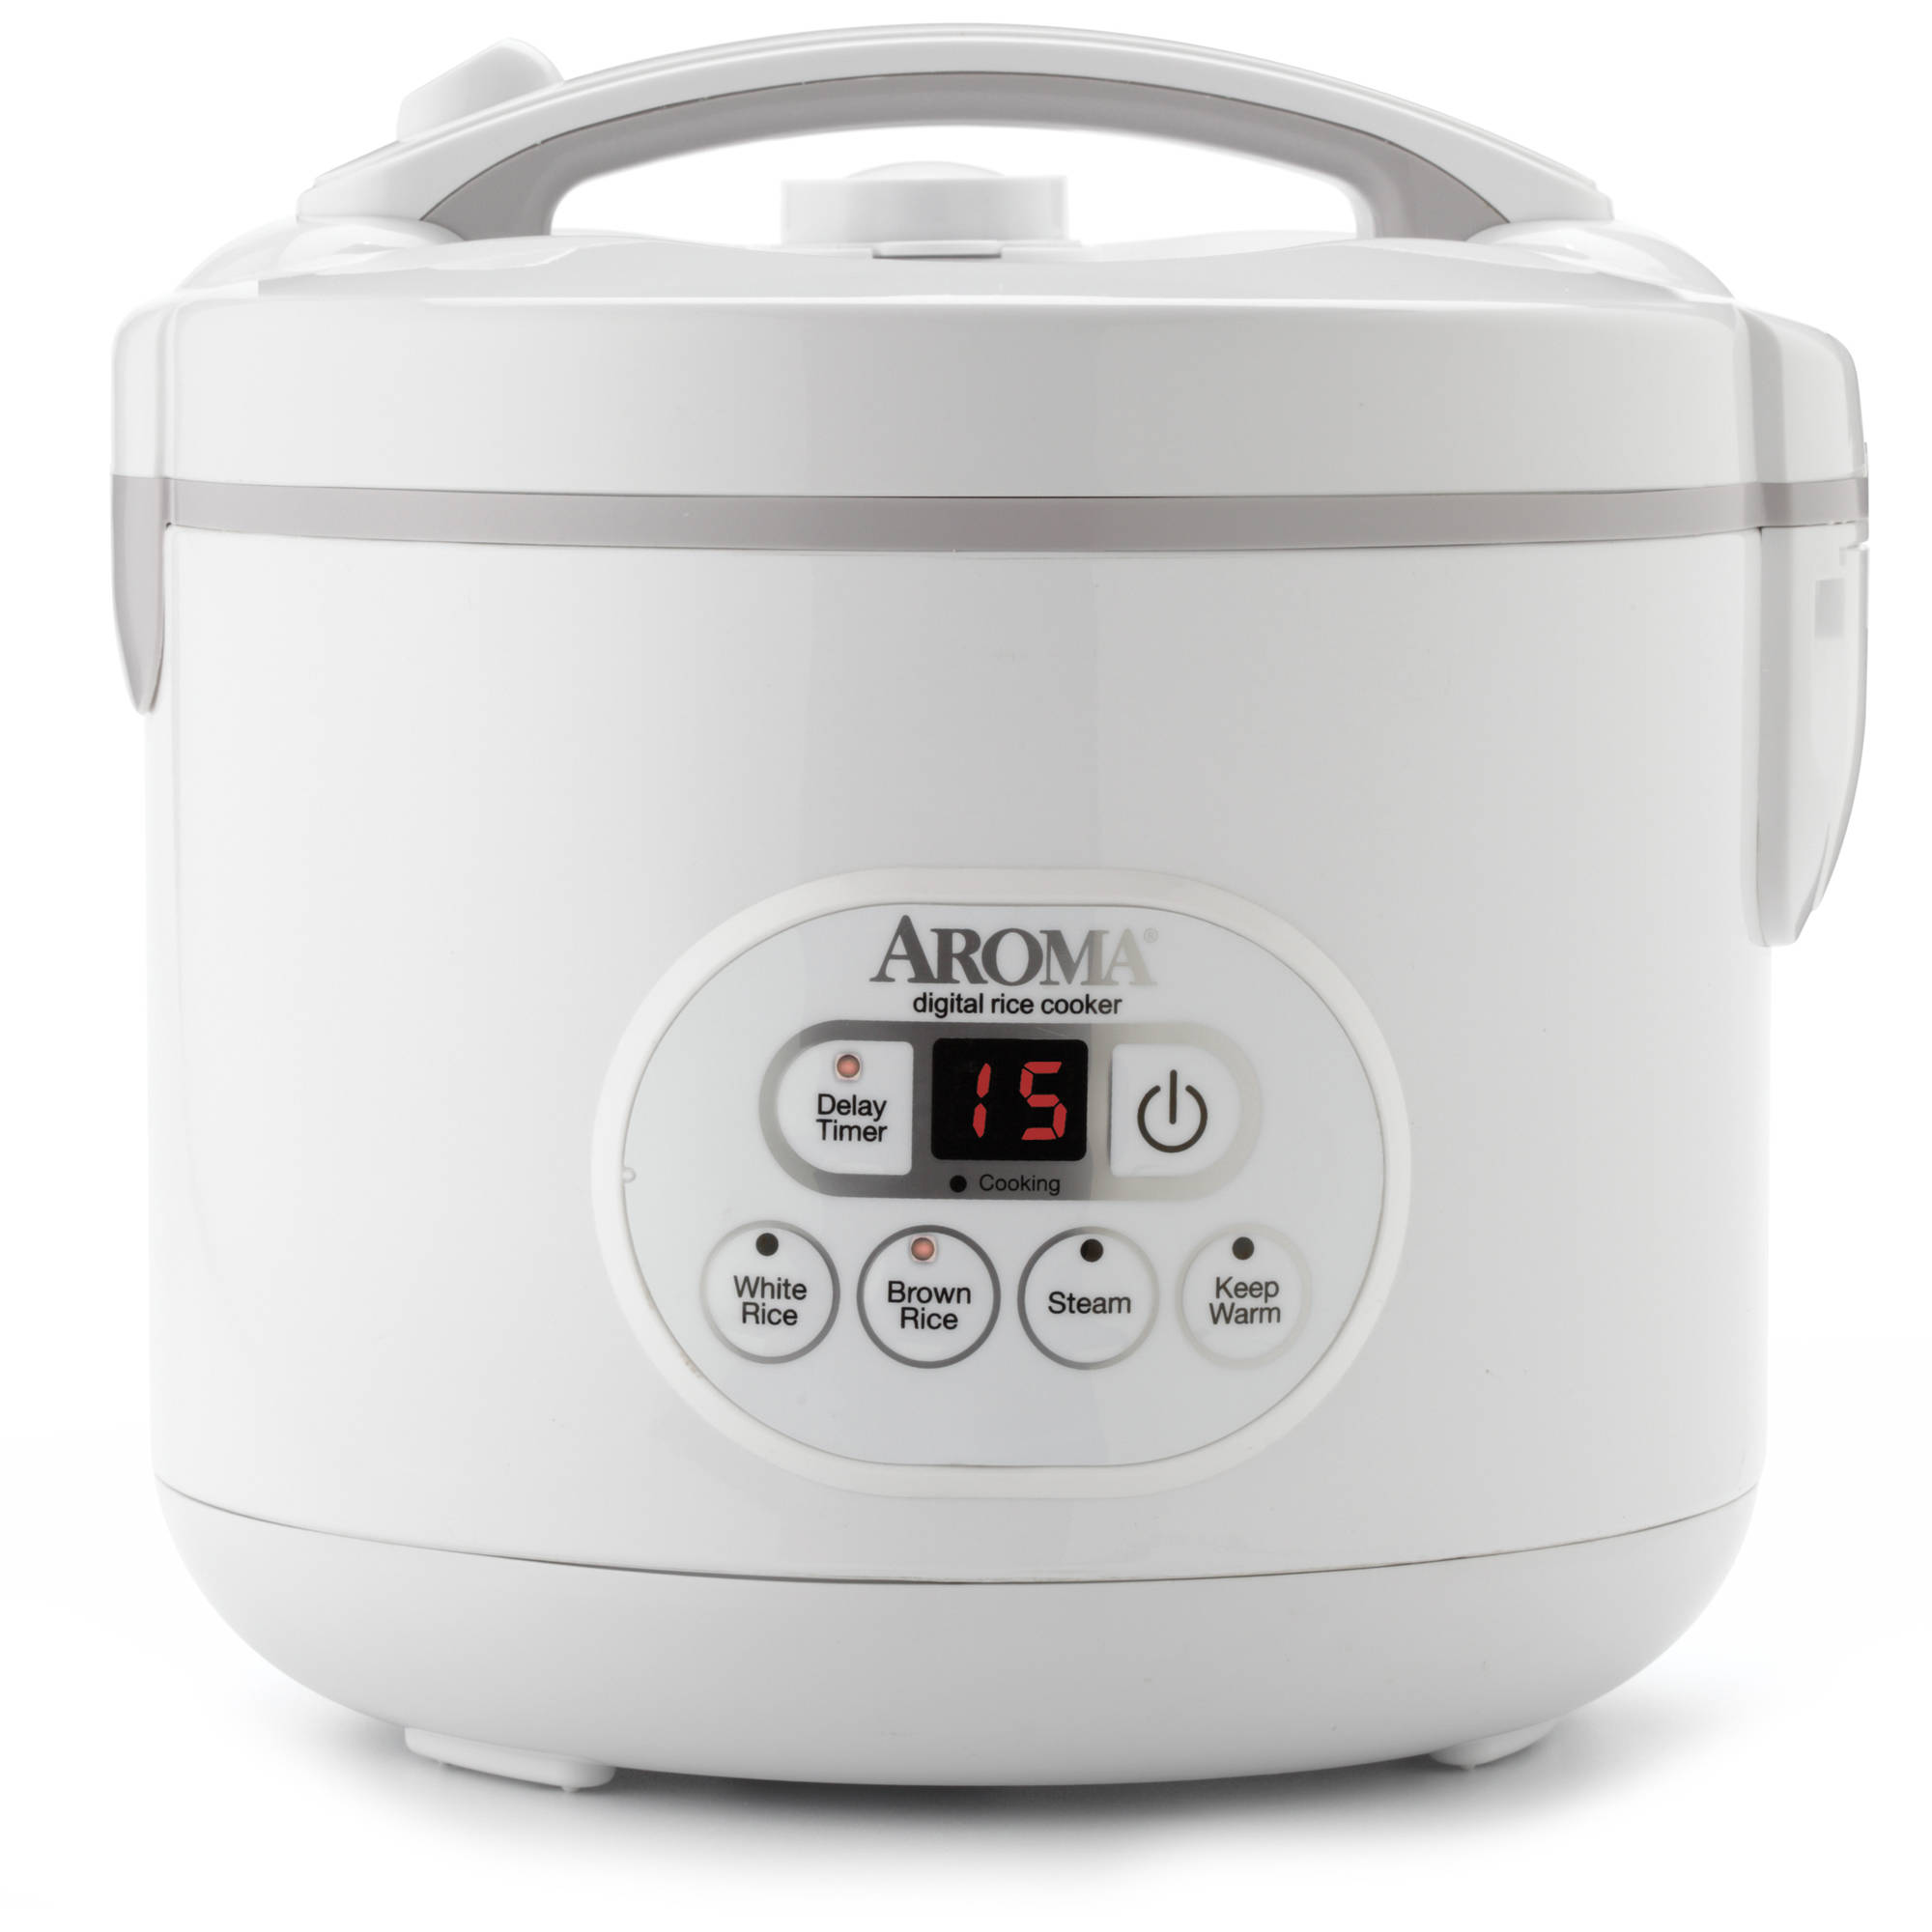 Aroma Digital Rice Cooker